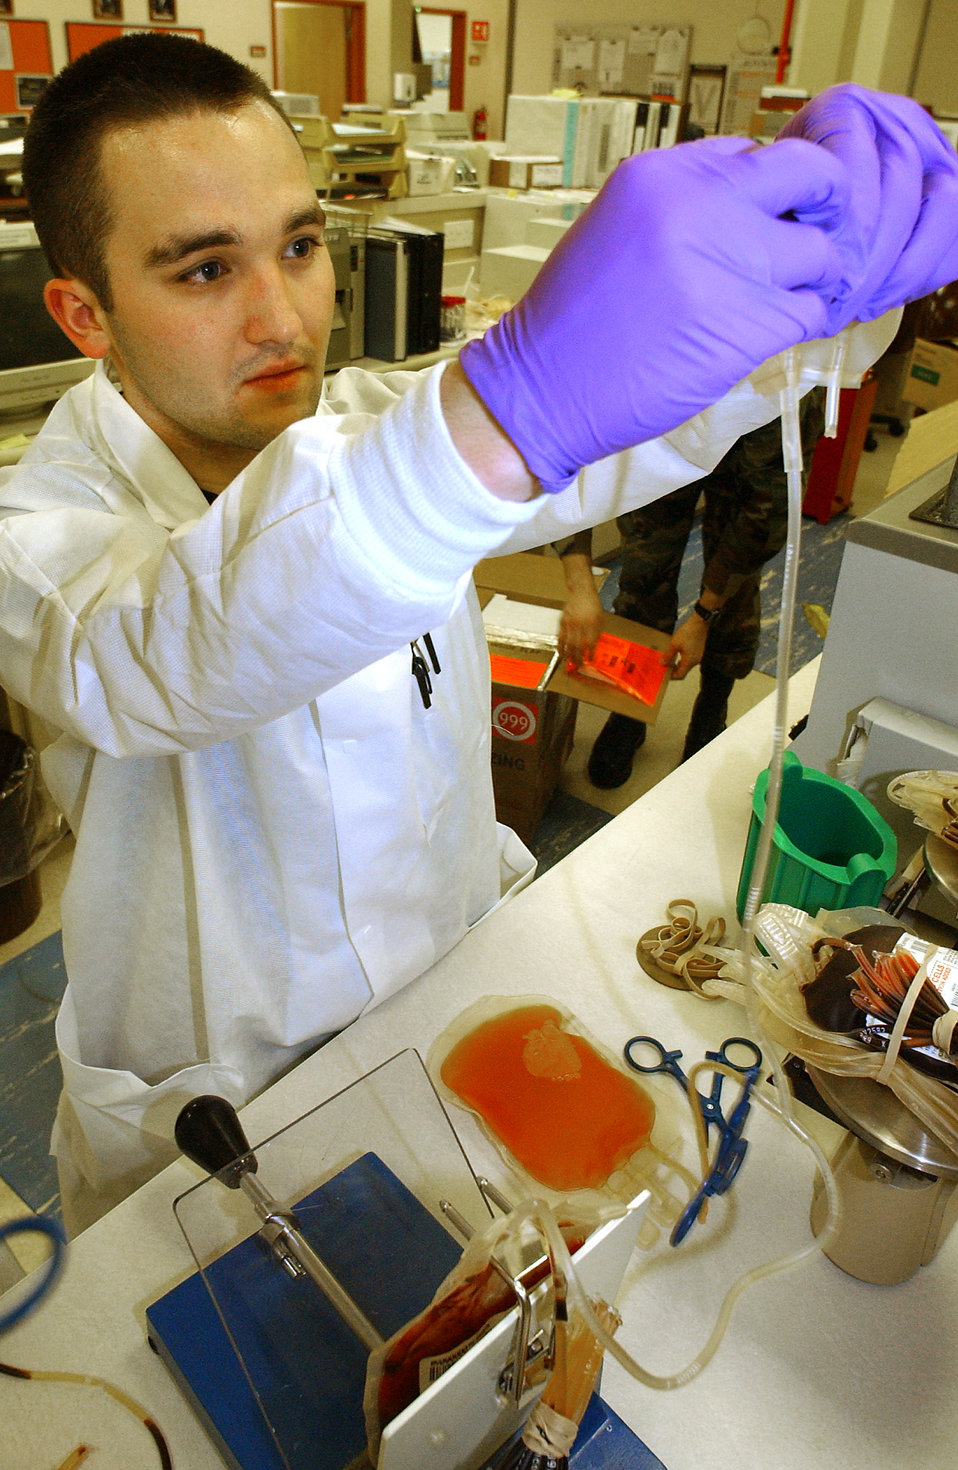 ROYAL AIR FORCE MILDENHALL, England -- Airman 1st Class Joshua Barnett squeezes a preservative solution into a bag of red blood cells so they are good for 42 days. The blood came from donors during a monthly blood drive. Airman Barnett is assigned to the 48th Medical Support Squadron.